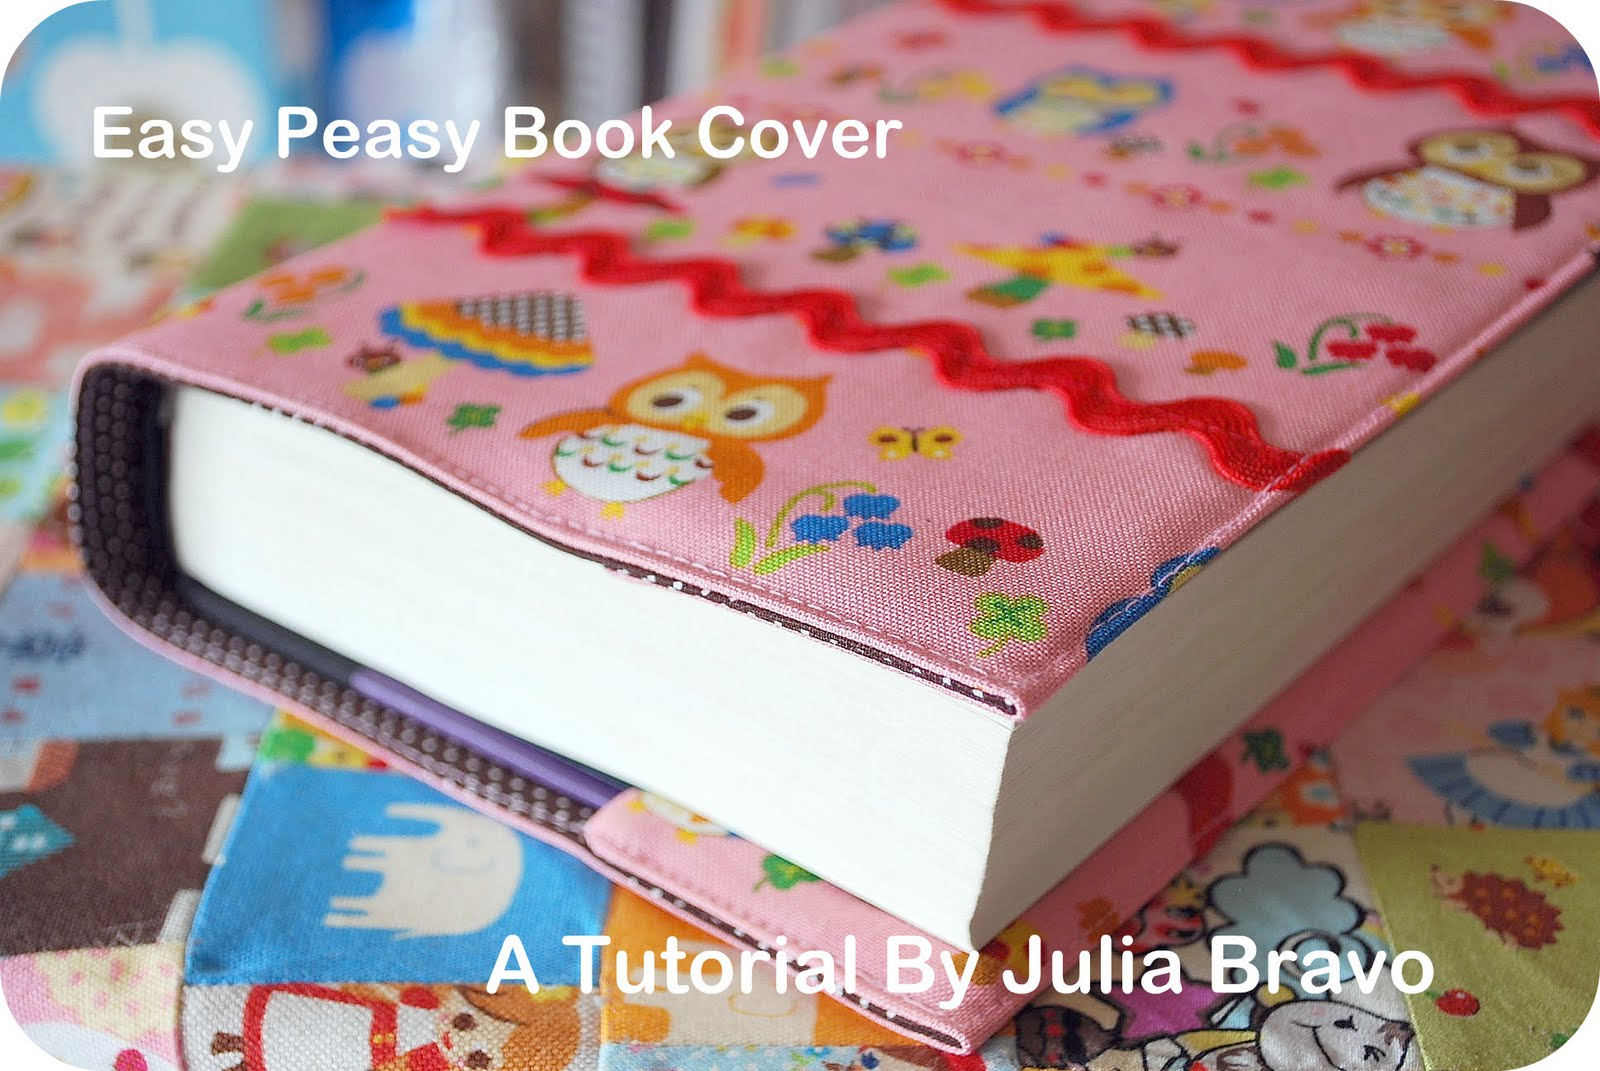 Adjustable Book Cover Tutorial : Stitches book cover tutorial image heavy